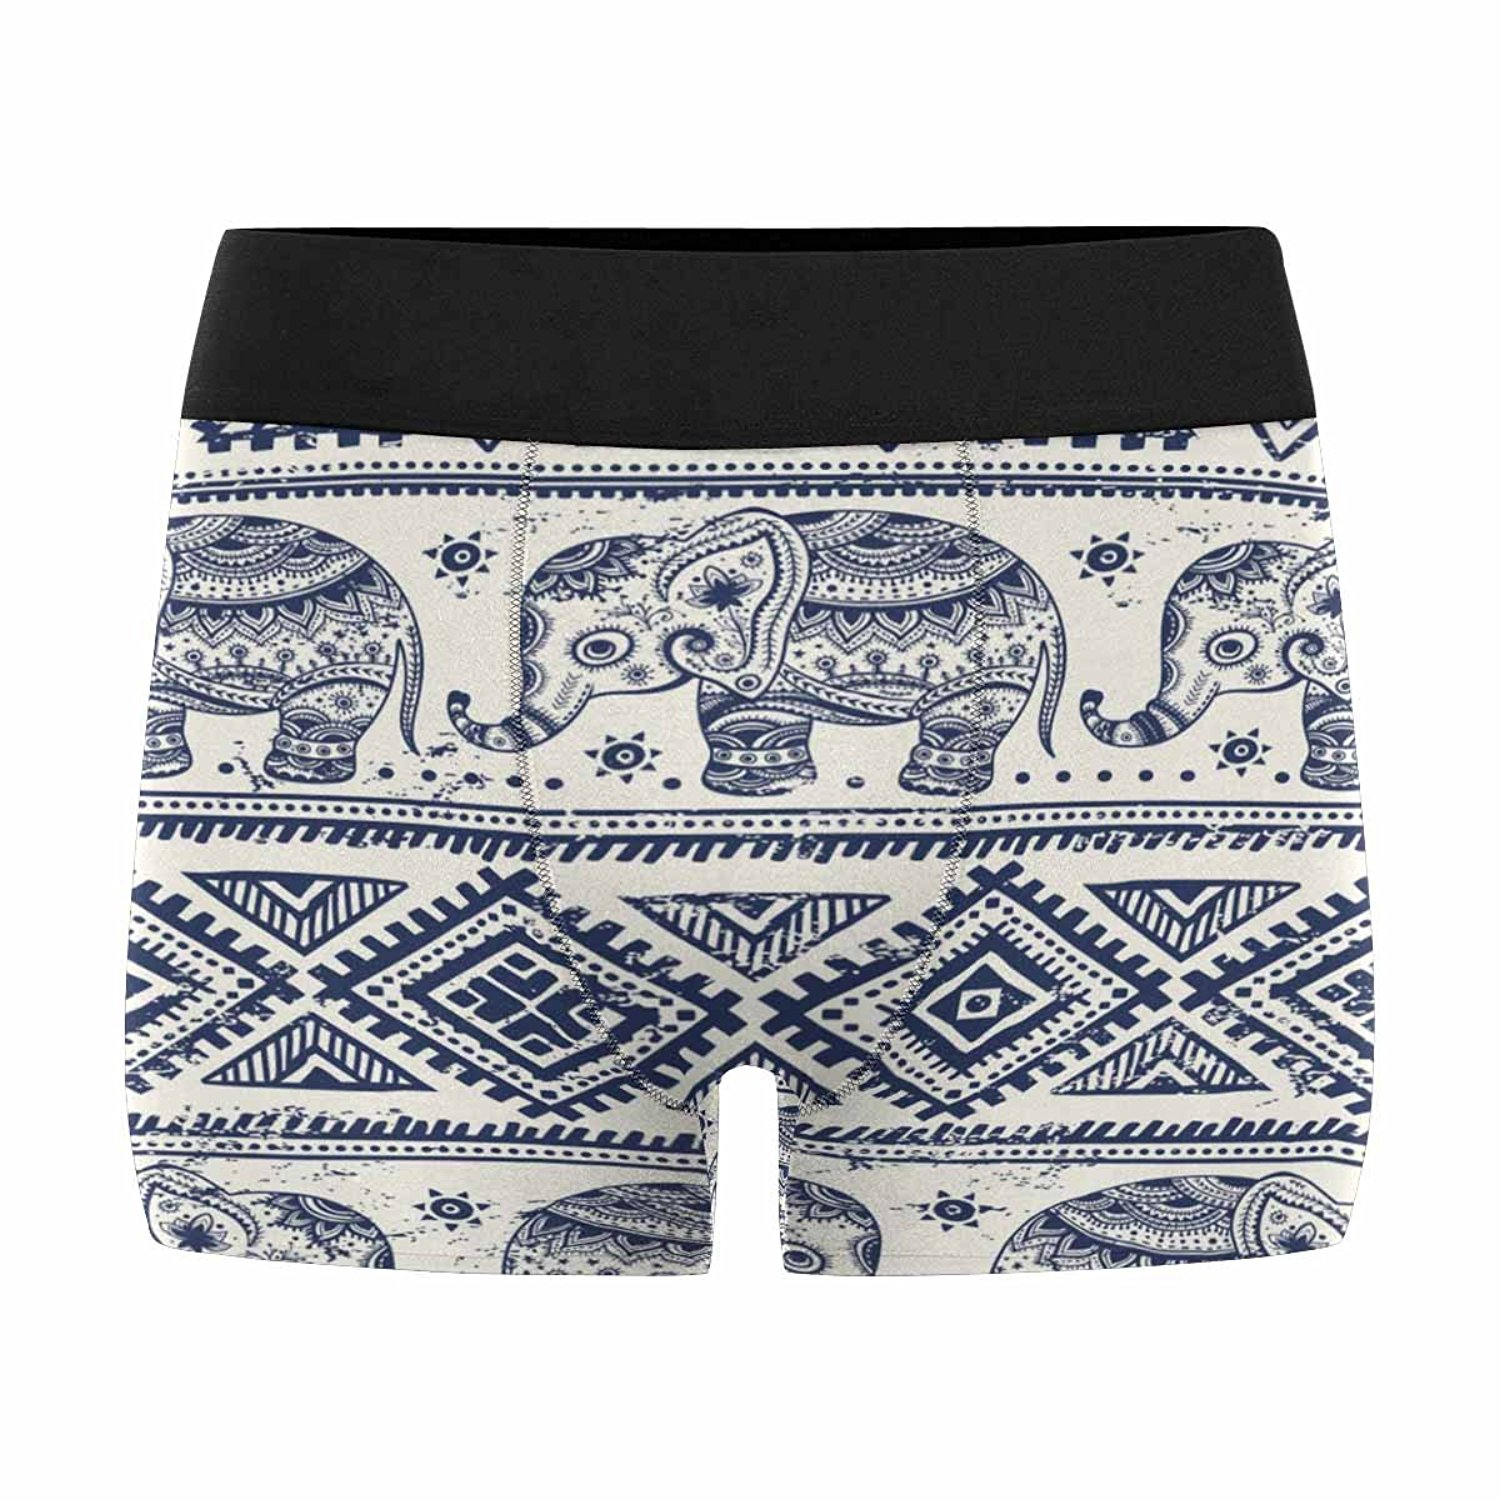 INTERESTPRINT Mens All-Over Print Boxer Briefs Floral with Elephants XS-3XL